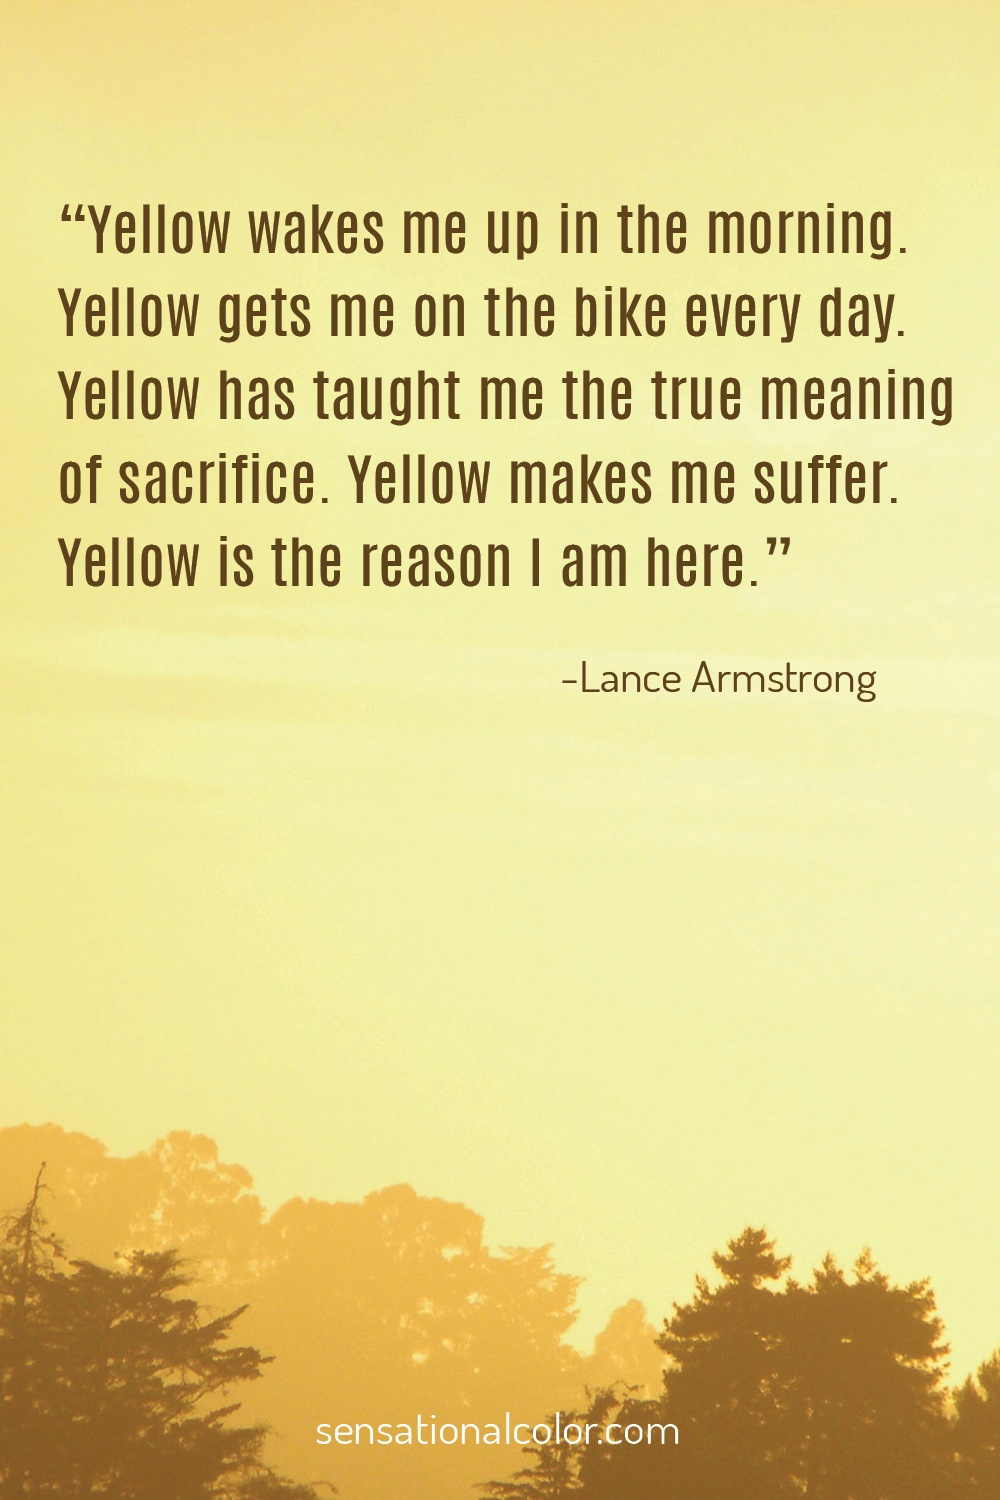 """Yellow wakes me up in the morning. Yellow gets me on the bike every day. Yellow has taught me the true meaning of sacrifice. Yellow makes me suffer. Yellow is the reason I am here."" - Lance Armstrong"